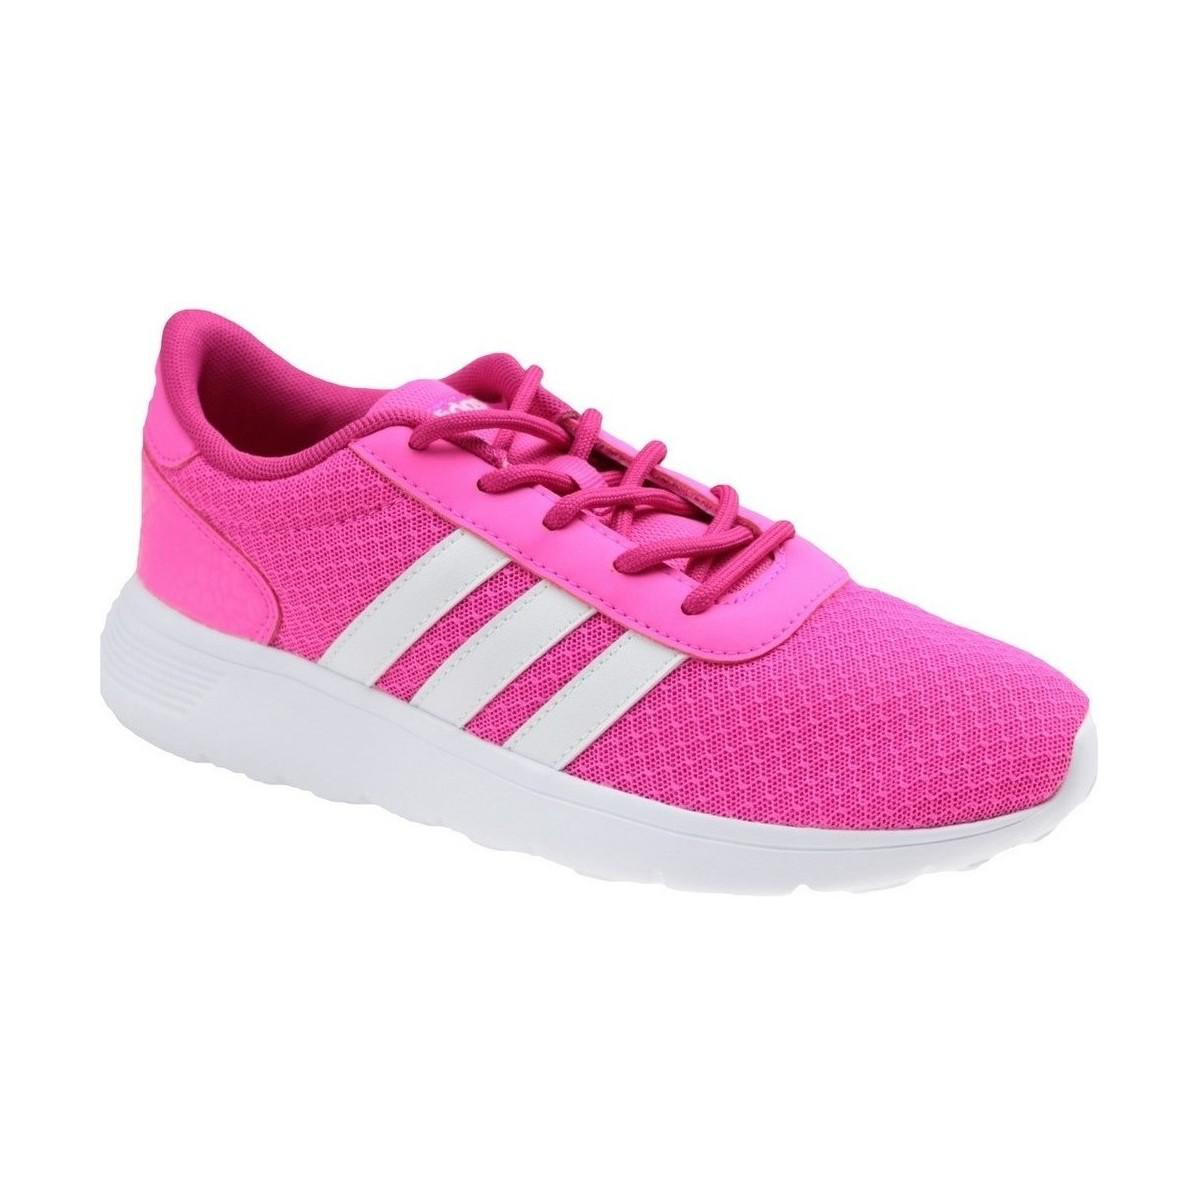 Adidas Lite Racer W Women s Shoes (trainers) In Pink in Pink - Lyst 418a5f982